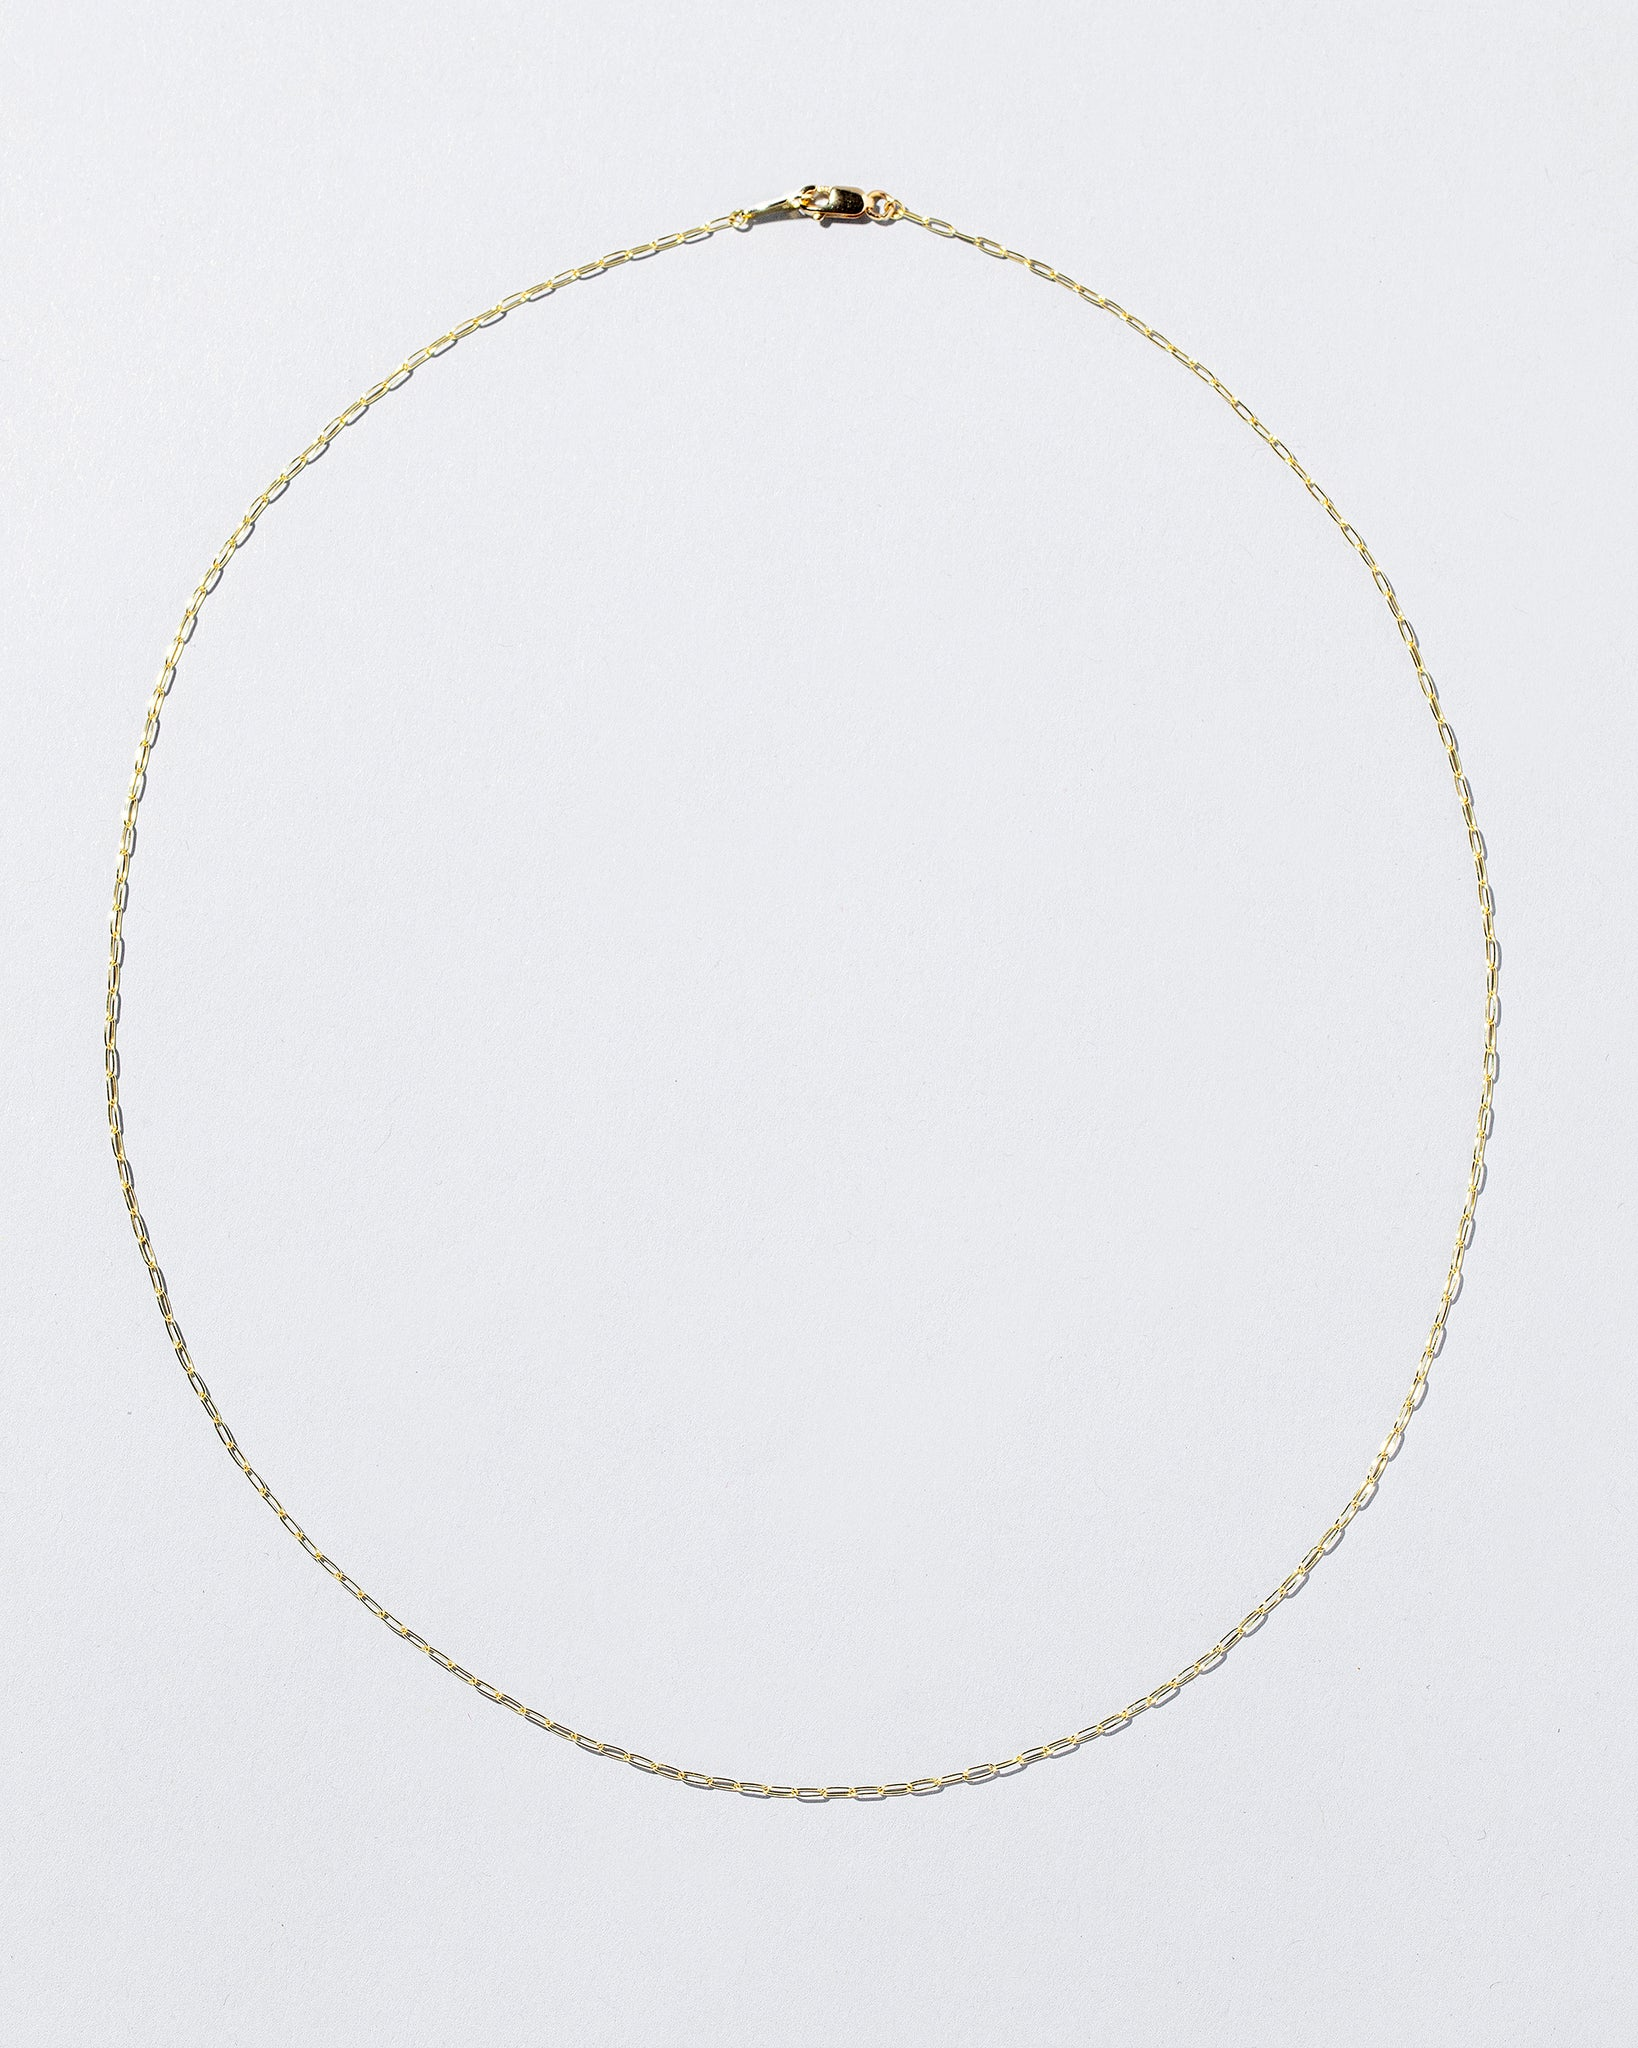 Oval Chain Necklace laying flat